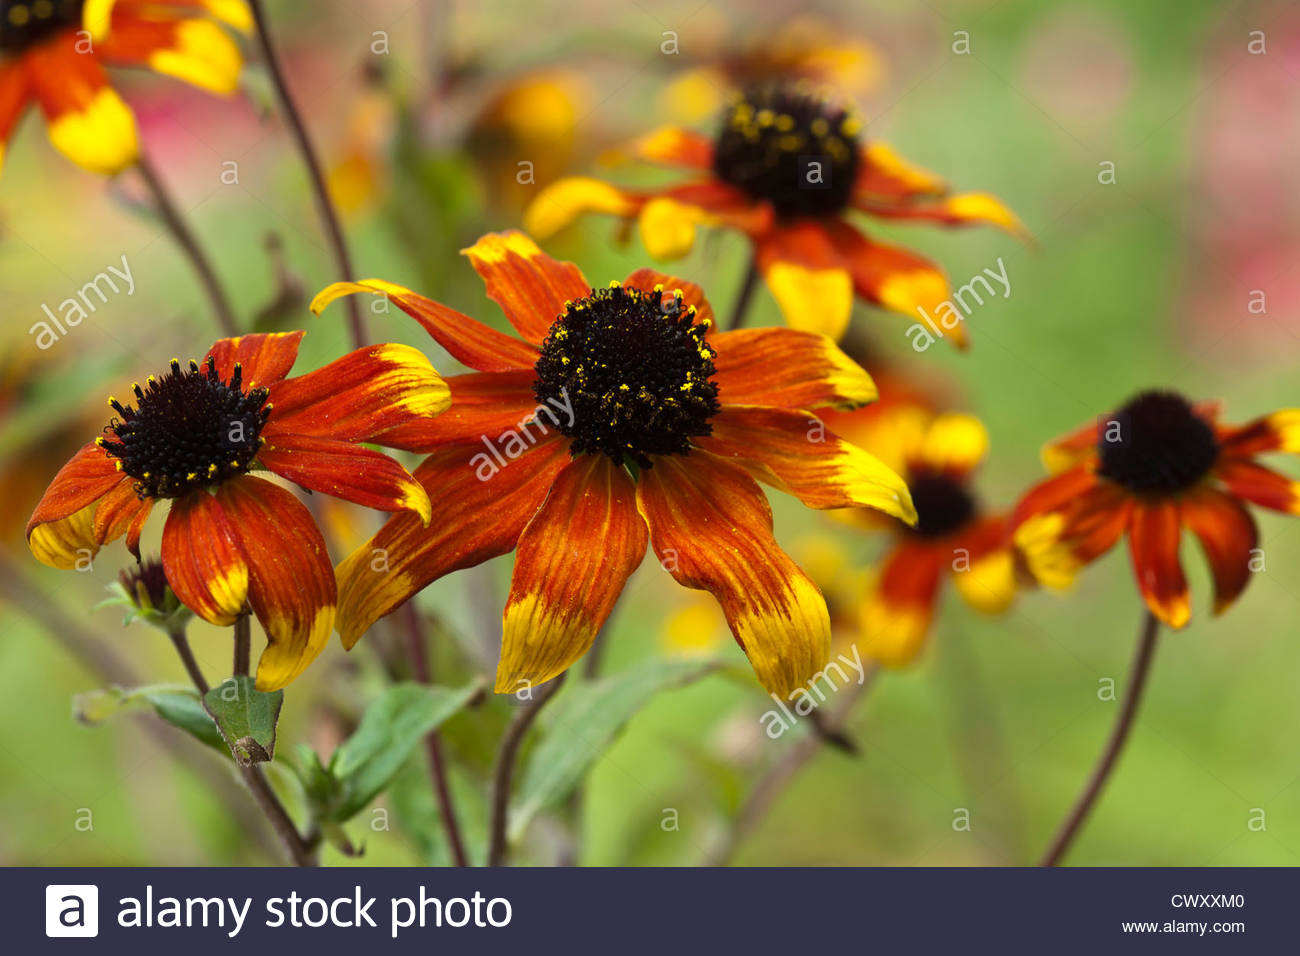 Rudbeckia prairie glow stock photos rudbeckia prairie glow stock browneyed susan rudbeckia triloba prairie glow summer flower perennial black orange yellow august tall garden plant mightylinksfo